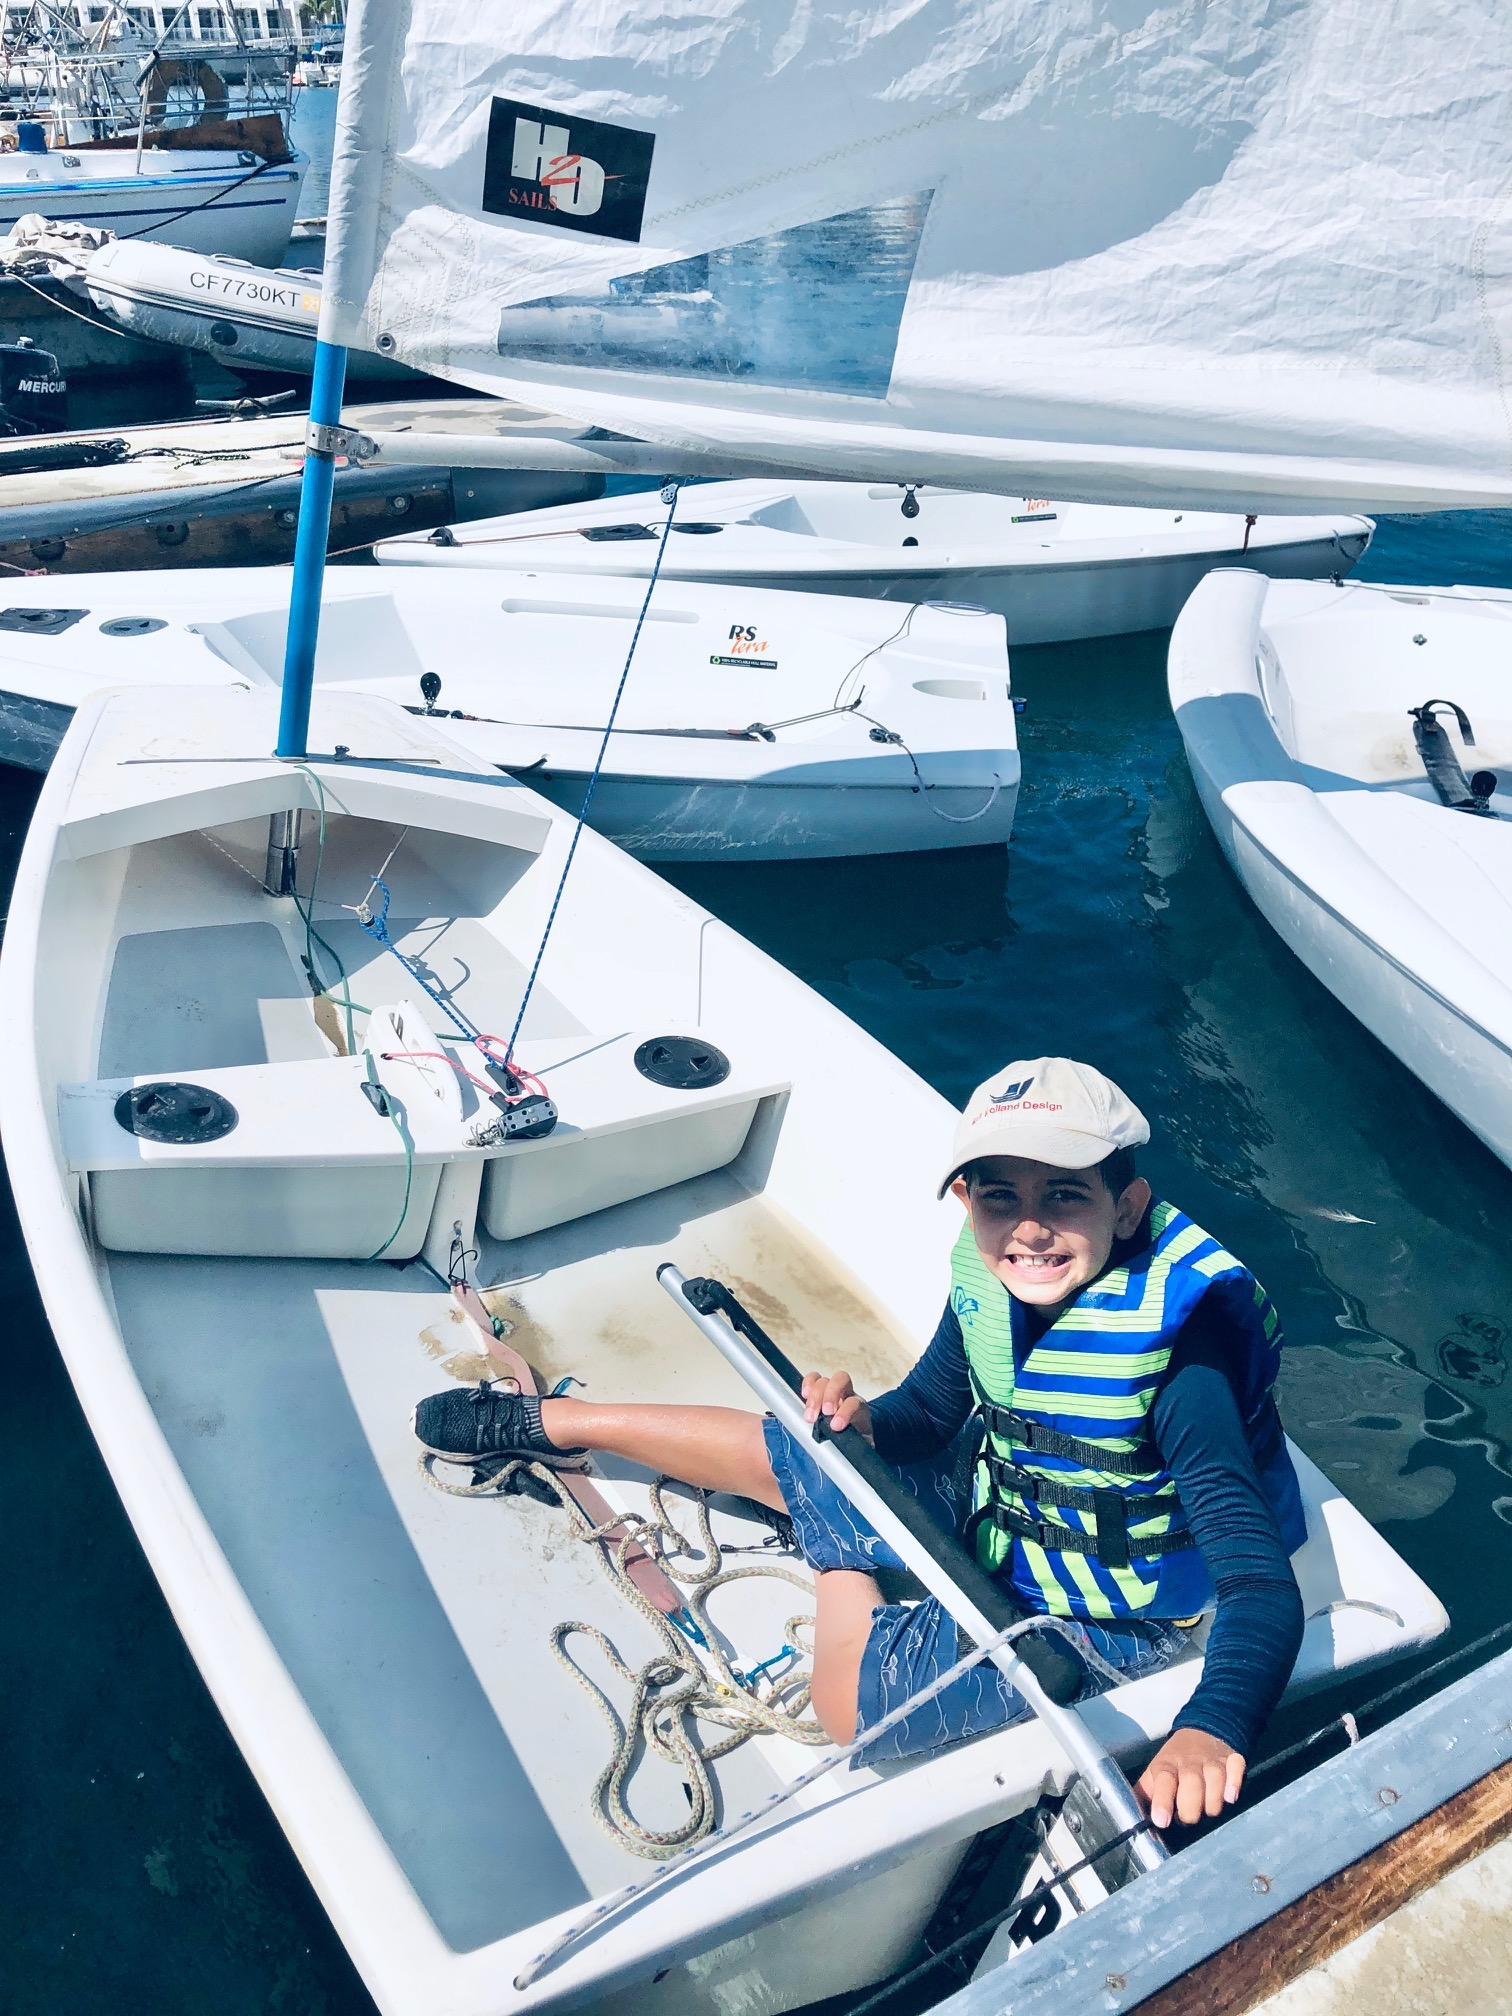 Wearing a Ron Holland Design hat young sailor ready to sail as he sits in his boat among a flotilla